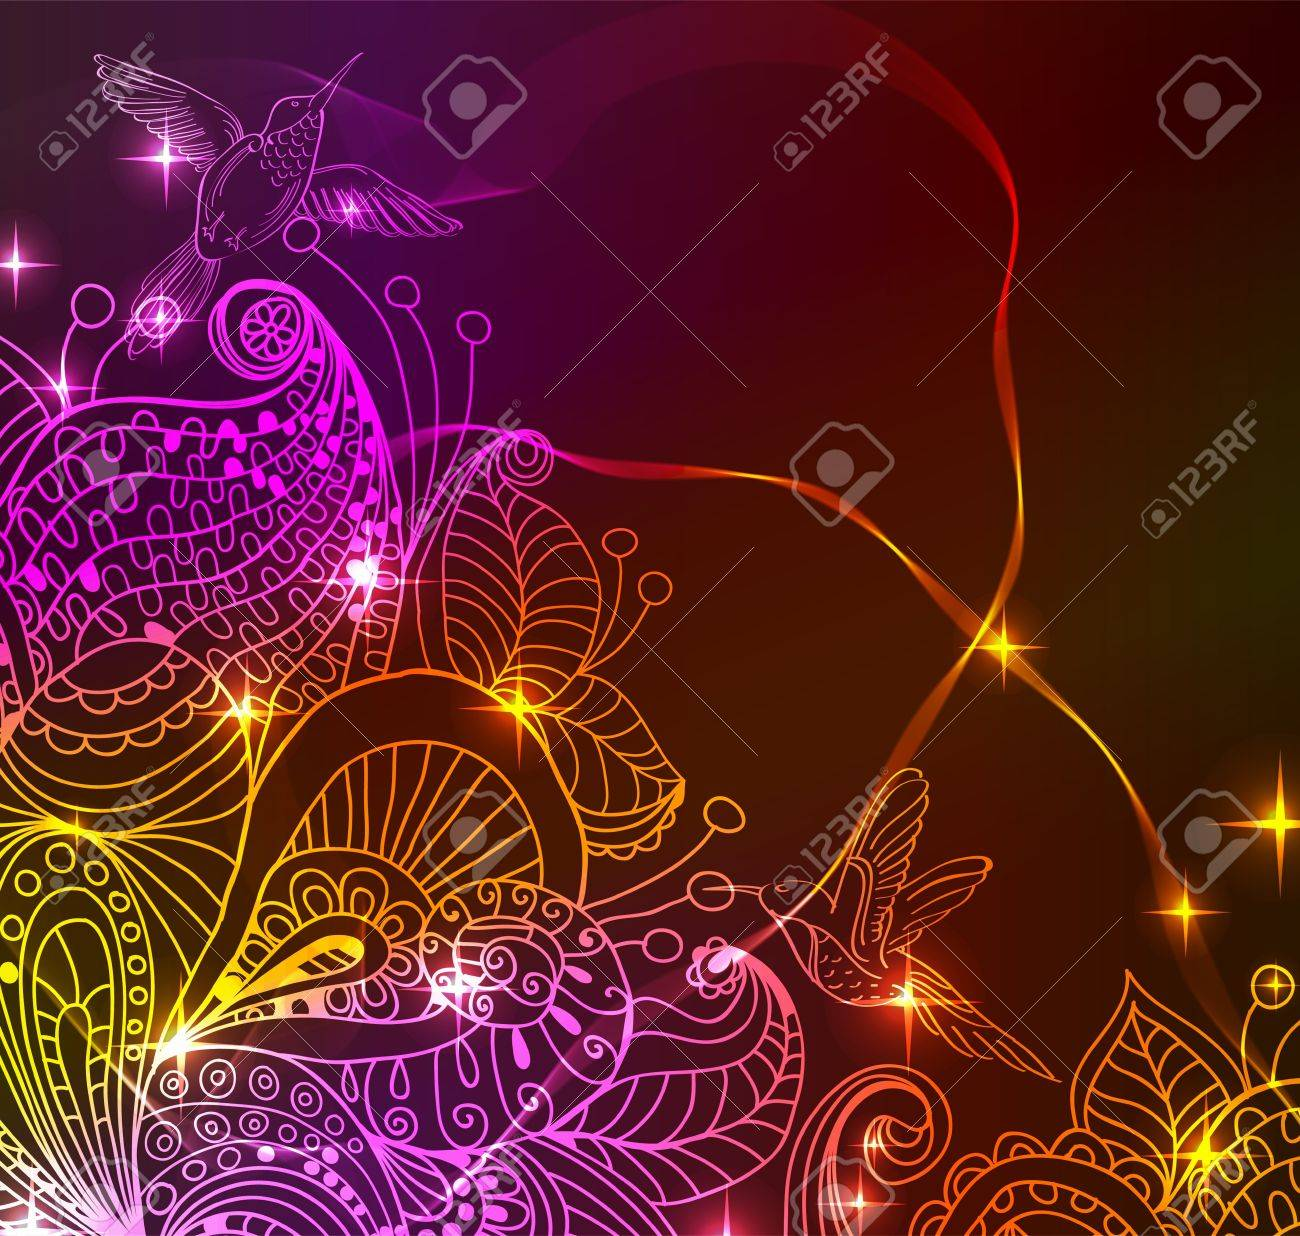 Doodle bright color floral background with birds, illustration for your design Stock Vector - 15774989